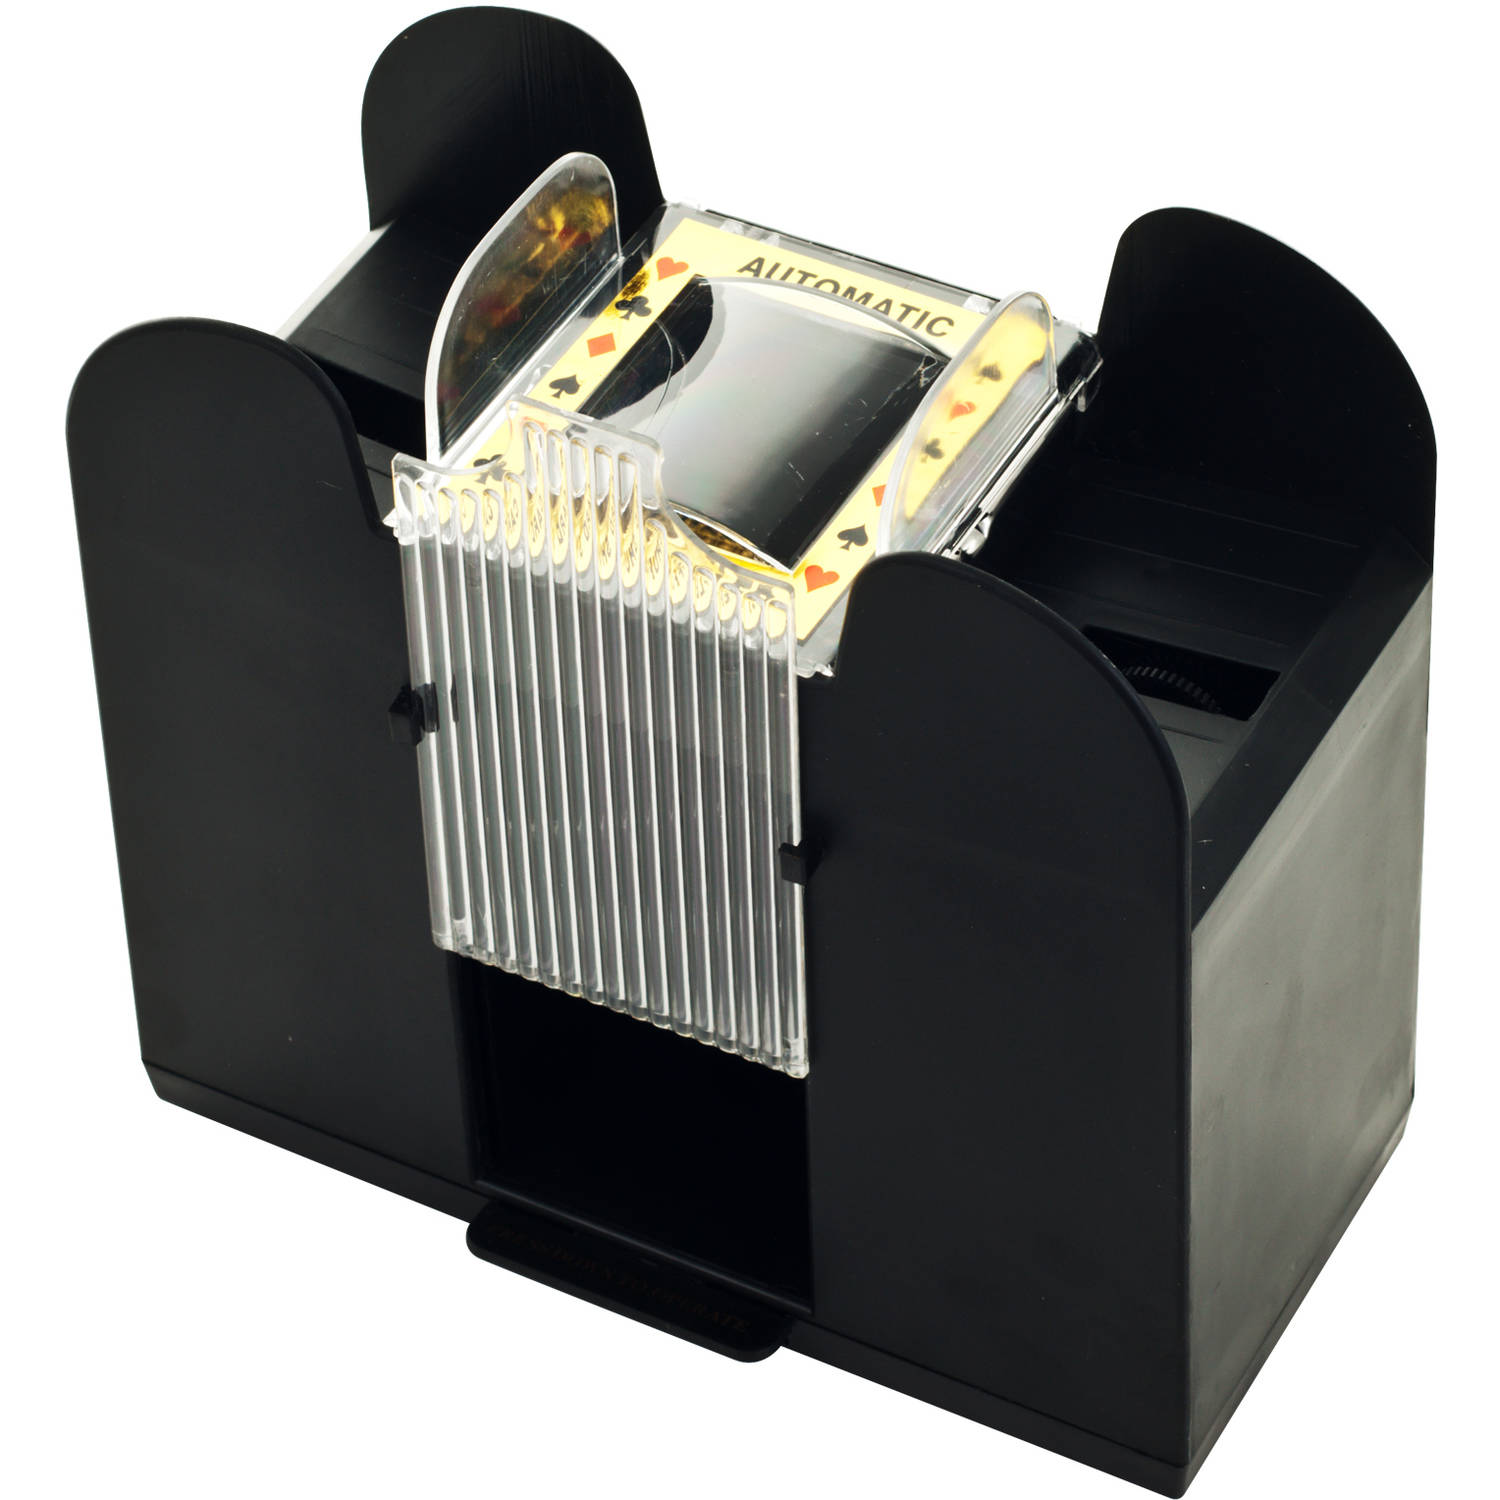 Trademark Poker 6 Deck Automatic Card Shuffler